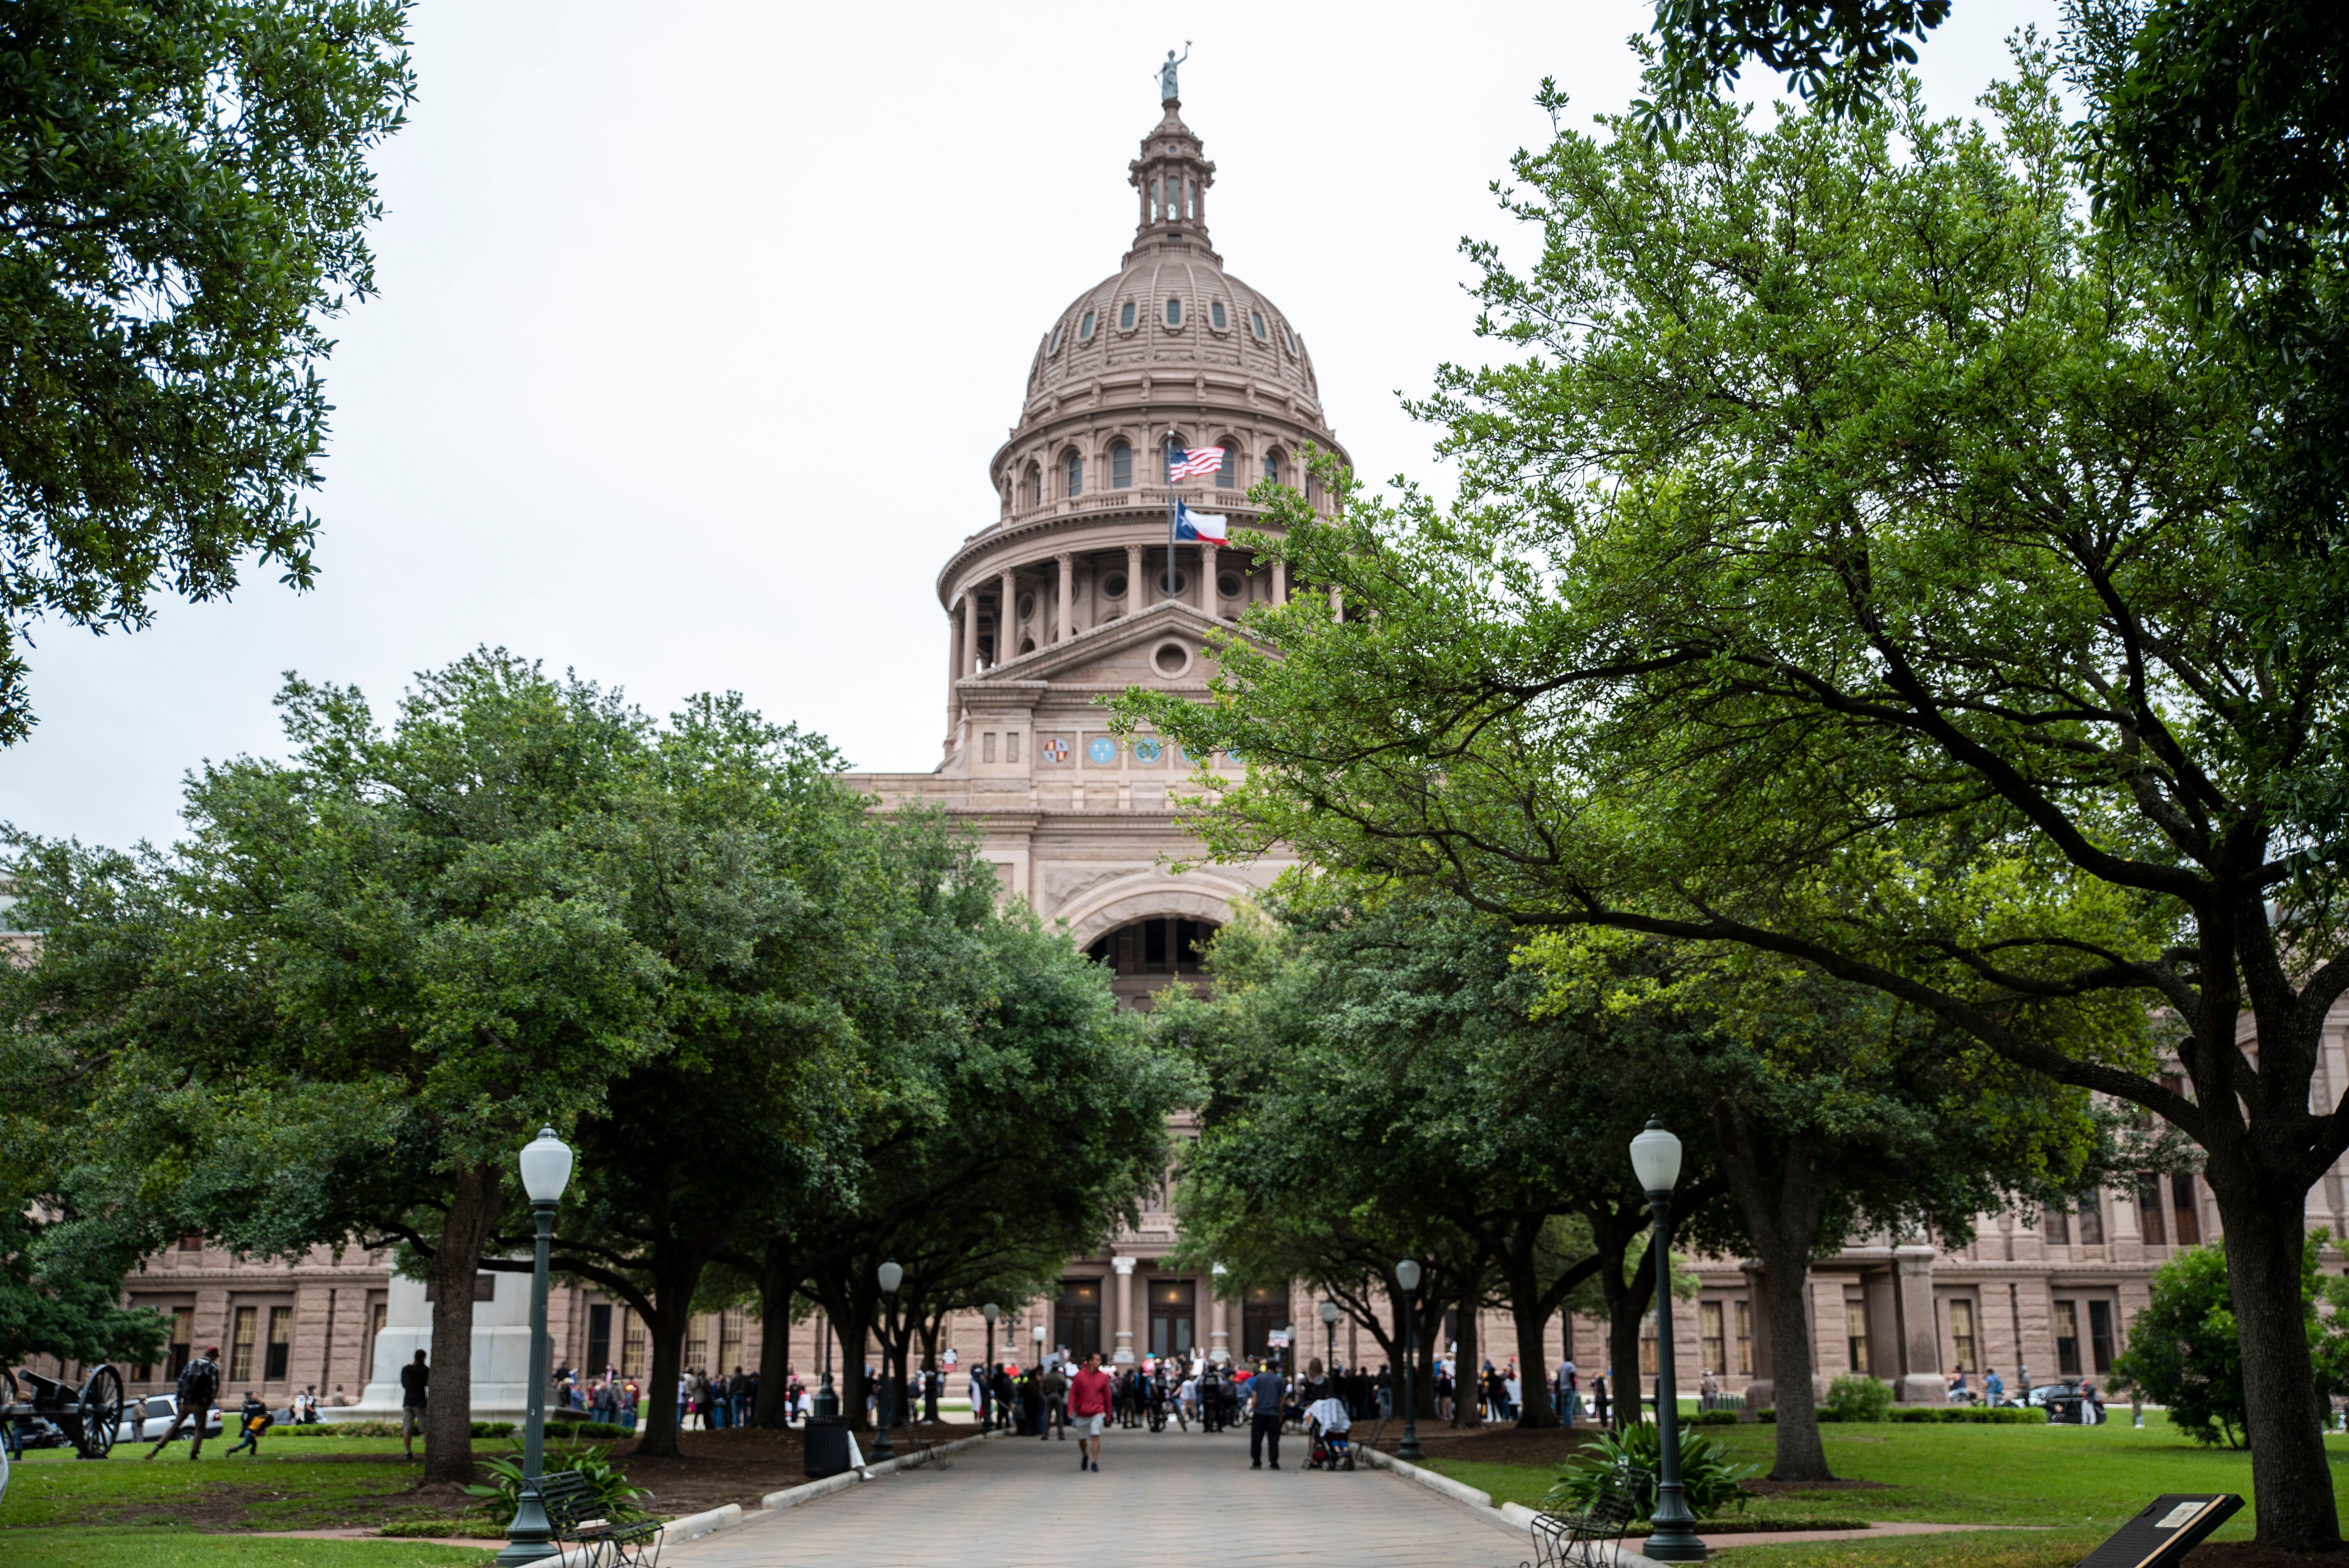 The Texas State Capitol building on April 18, 2020, in Austin.